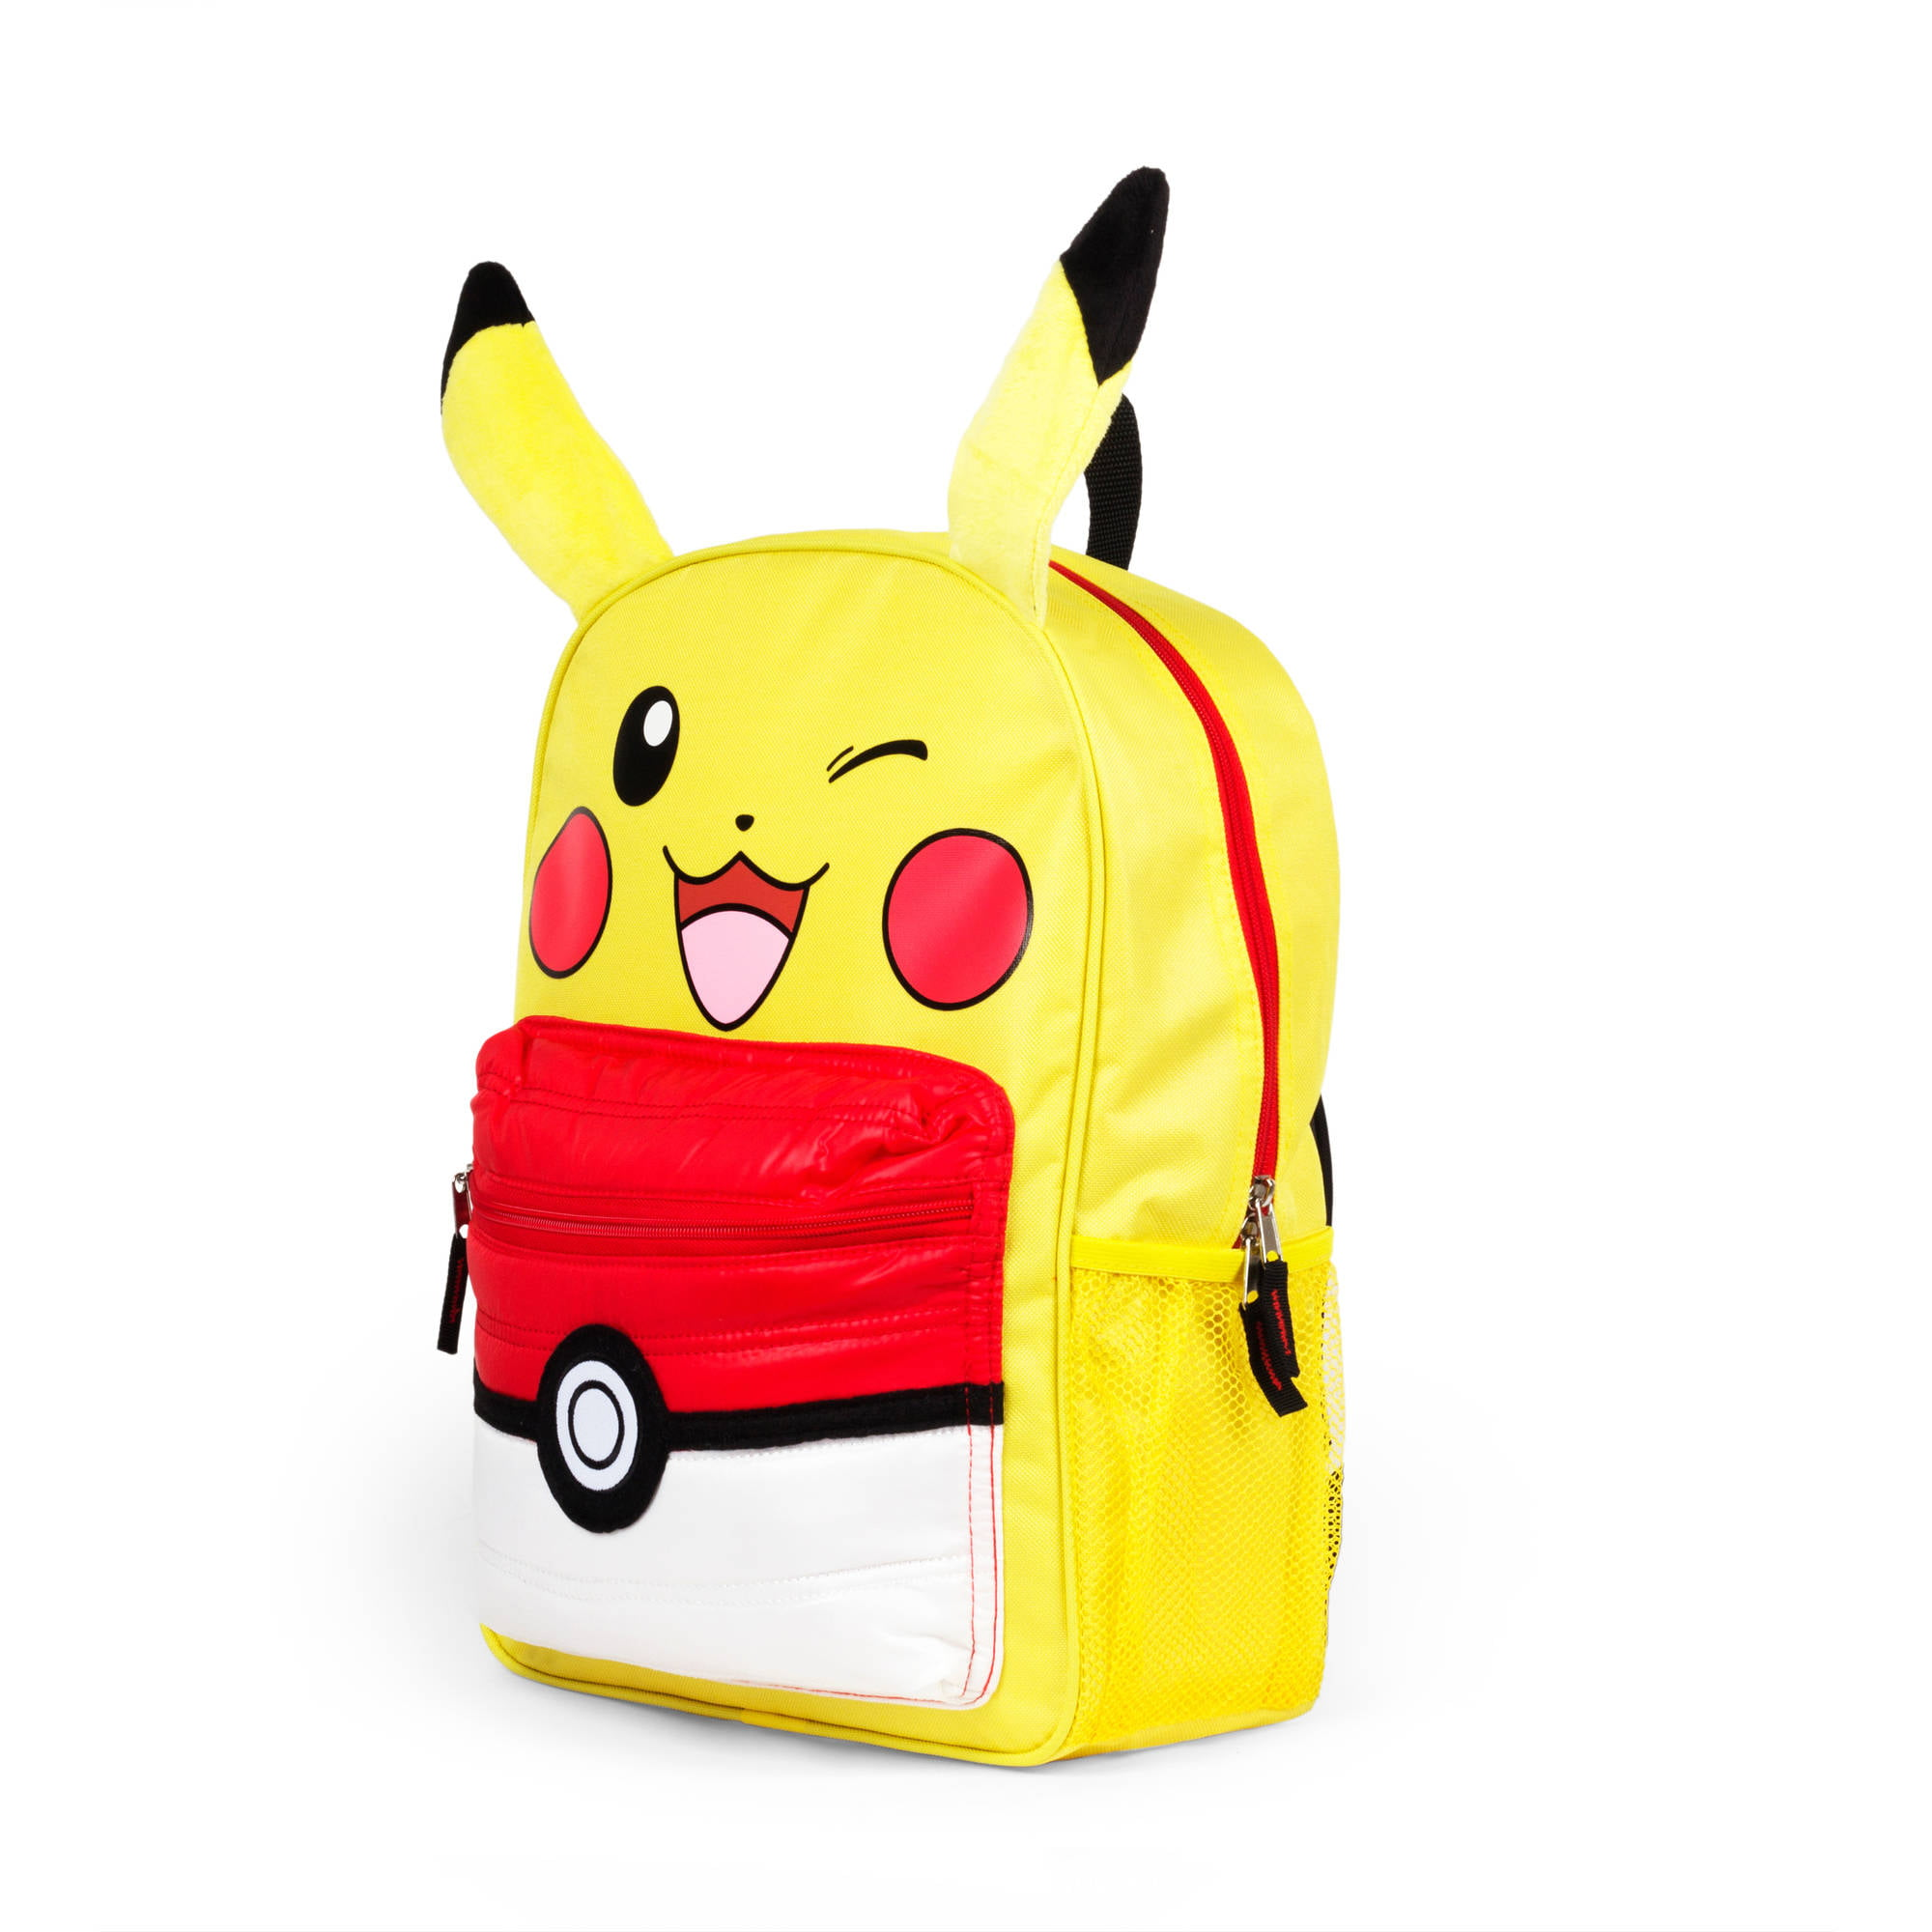 "Pokemon Pikachu 16"" Kids Licensed Backpack with Puffed Pocket by FAB NY"